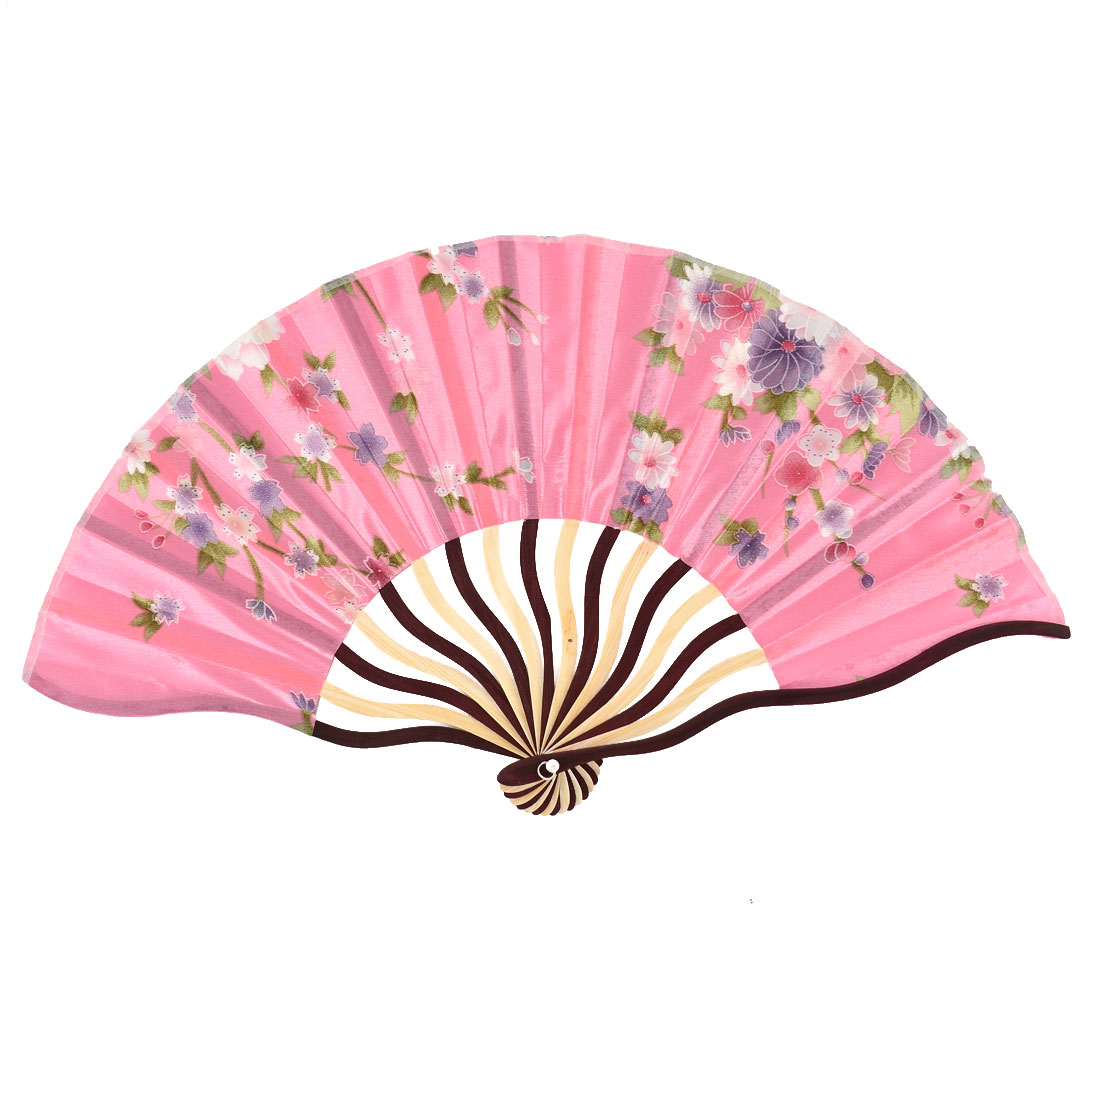 Bamboo Ribs Flower Pattern Portable Folding Dancing Hand Fan Pink w Pouch